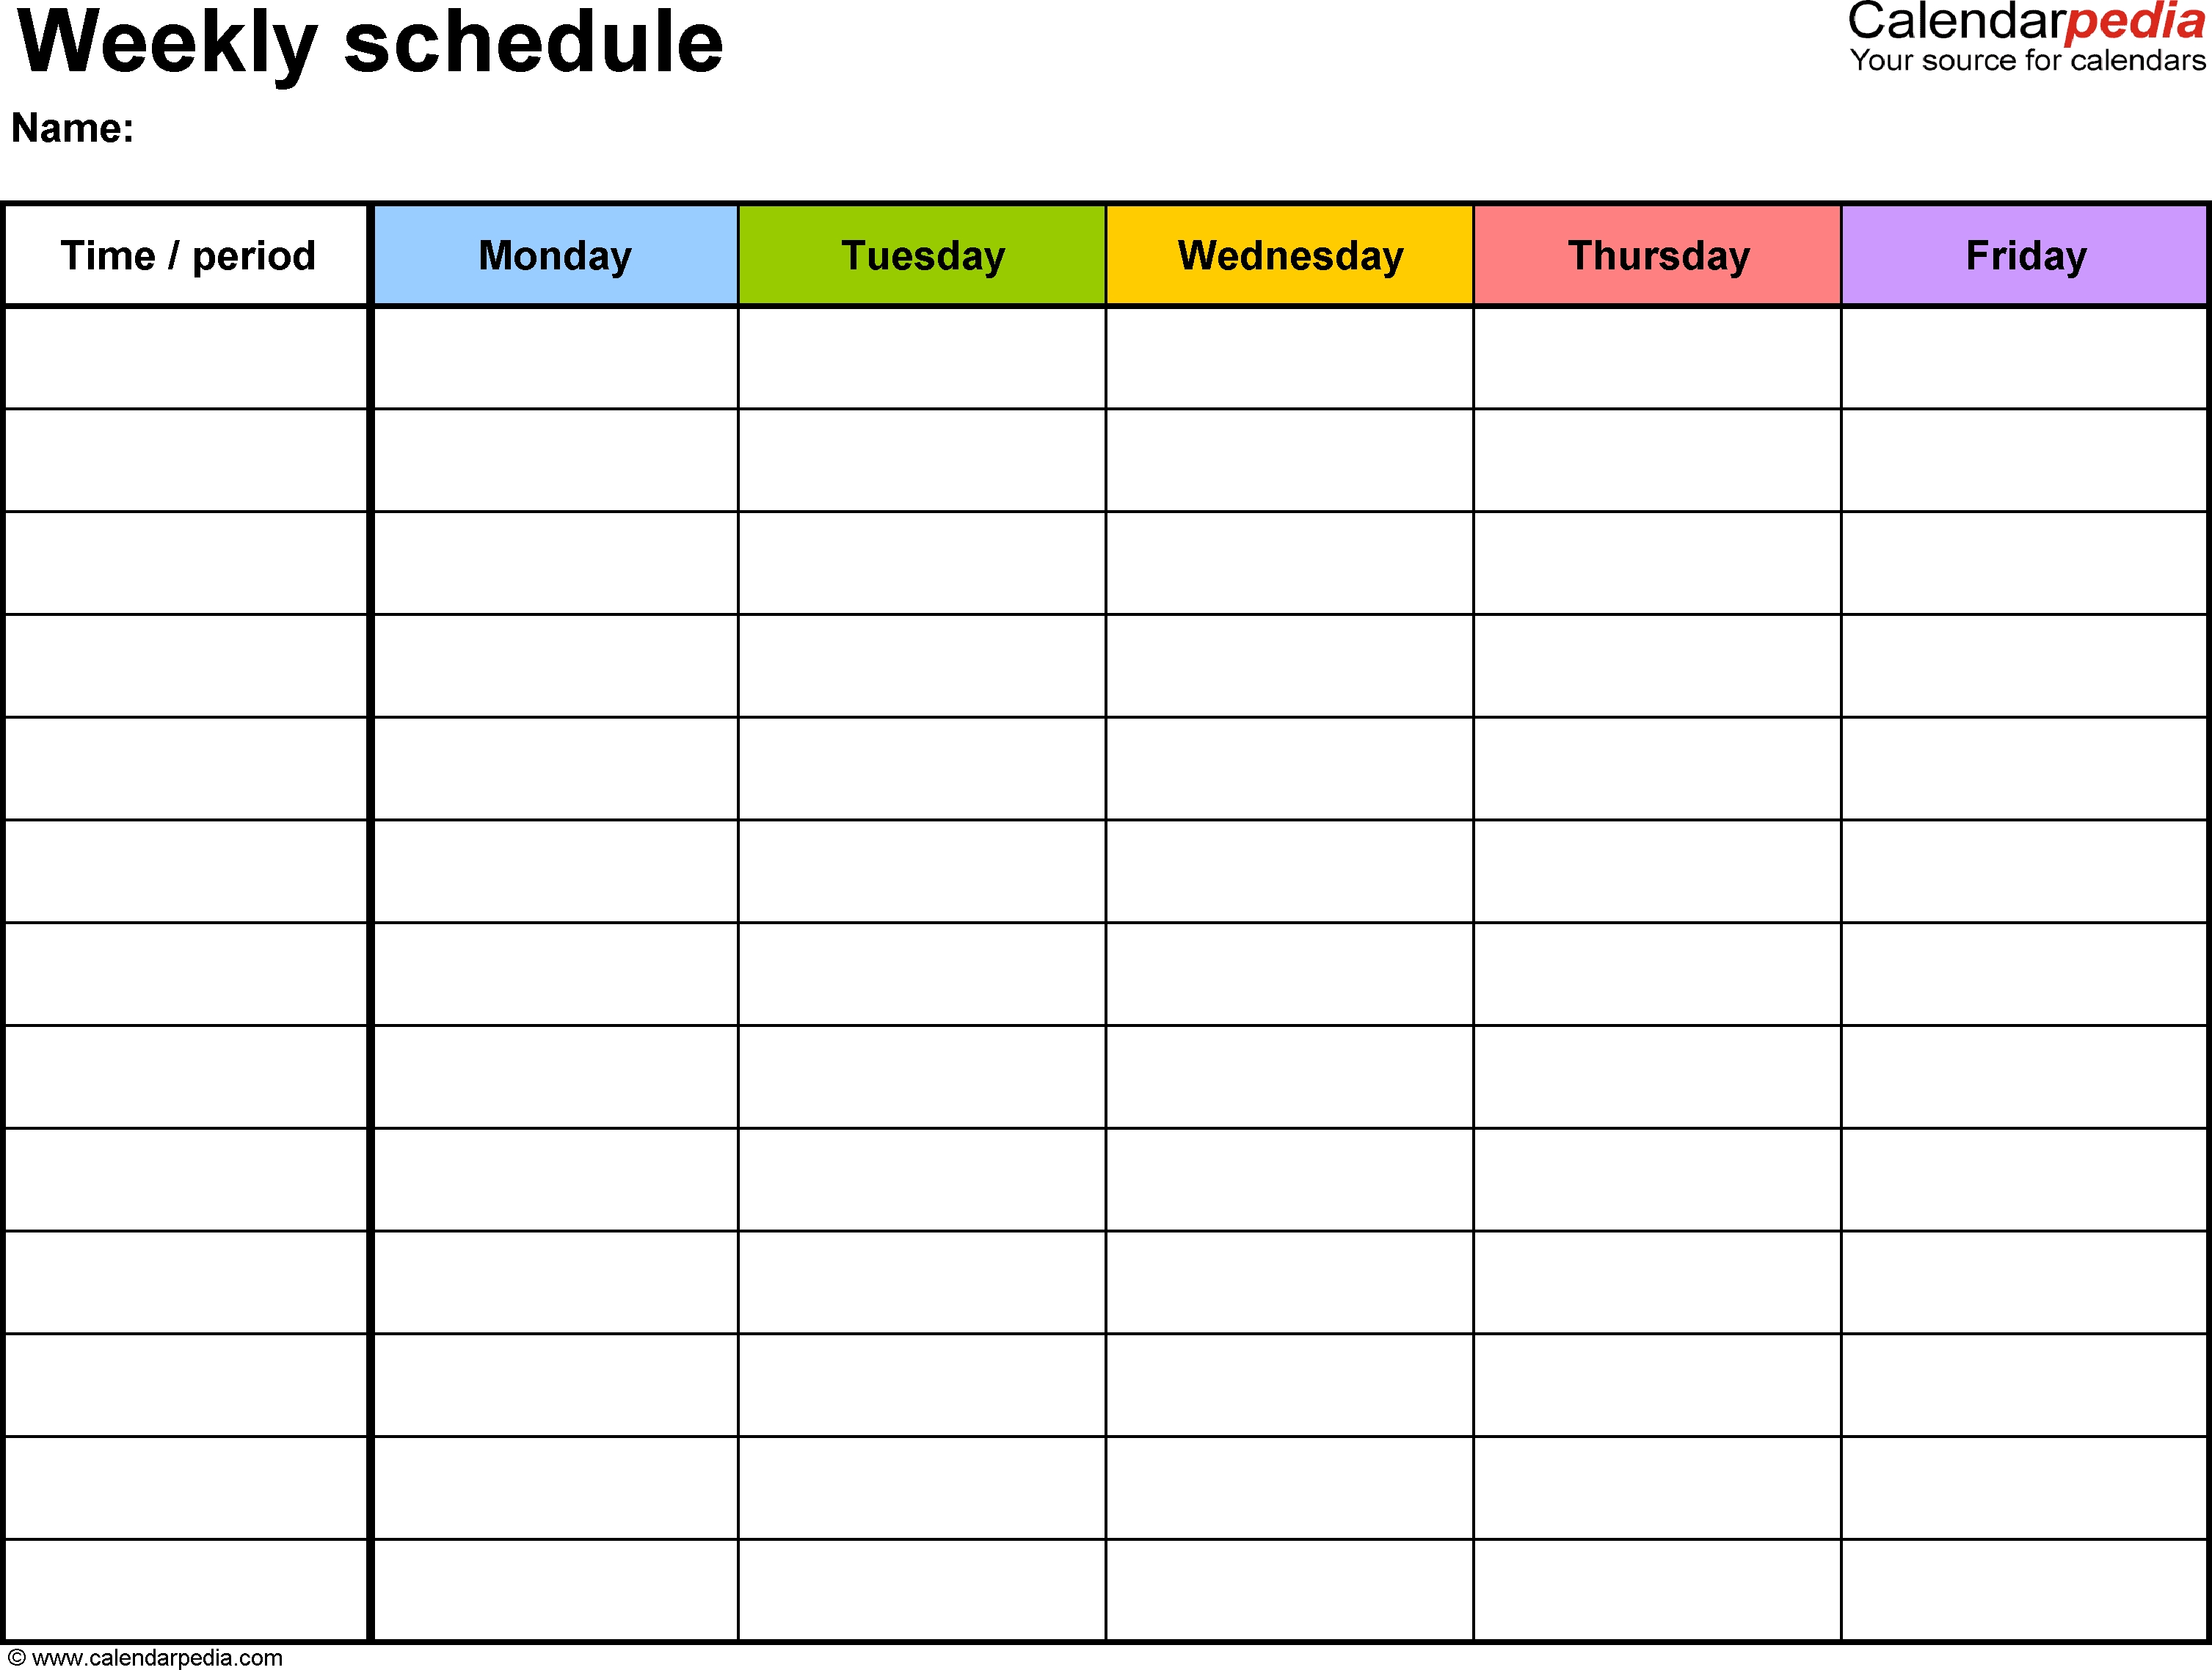 Free Weekly Schedule Templates For Word - 18 Templates-5 Day Template Calendar Blank